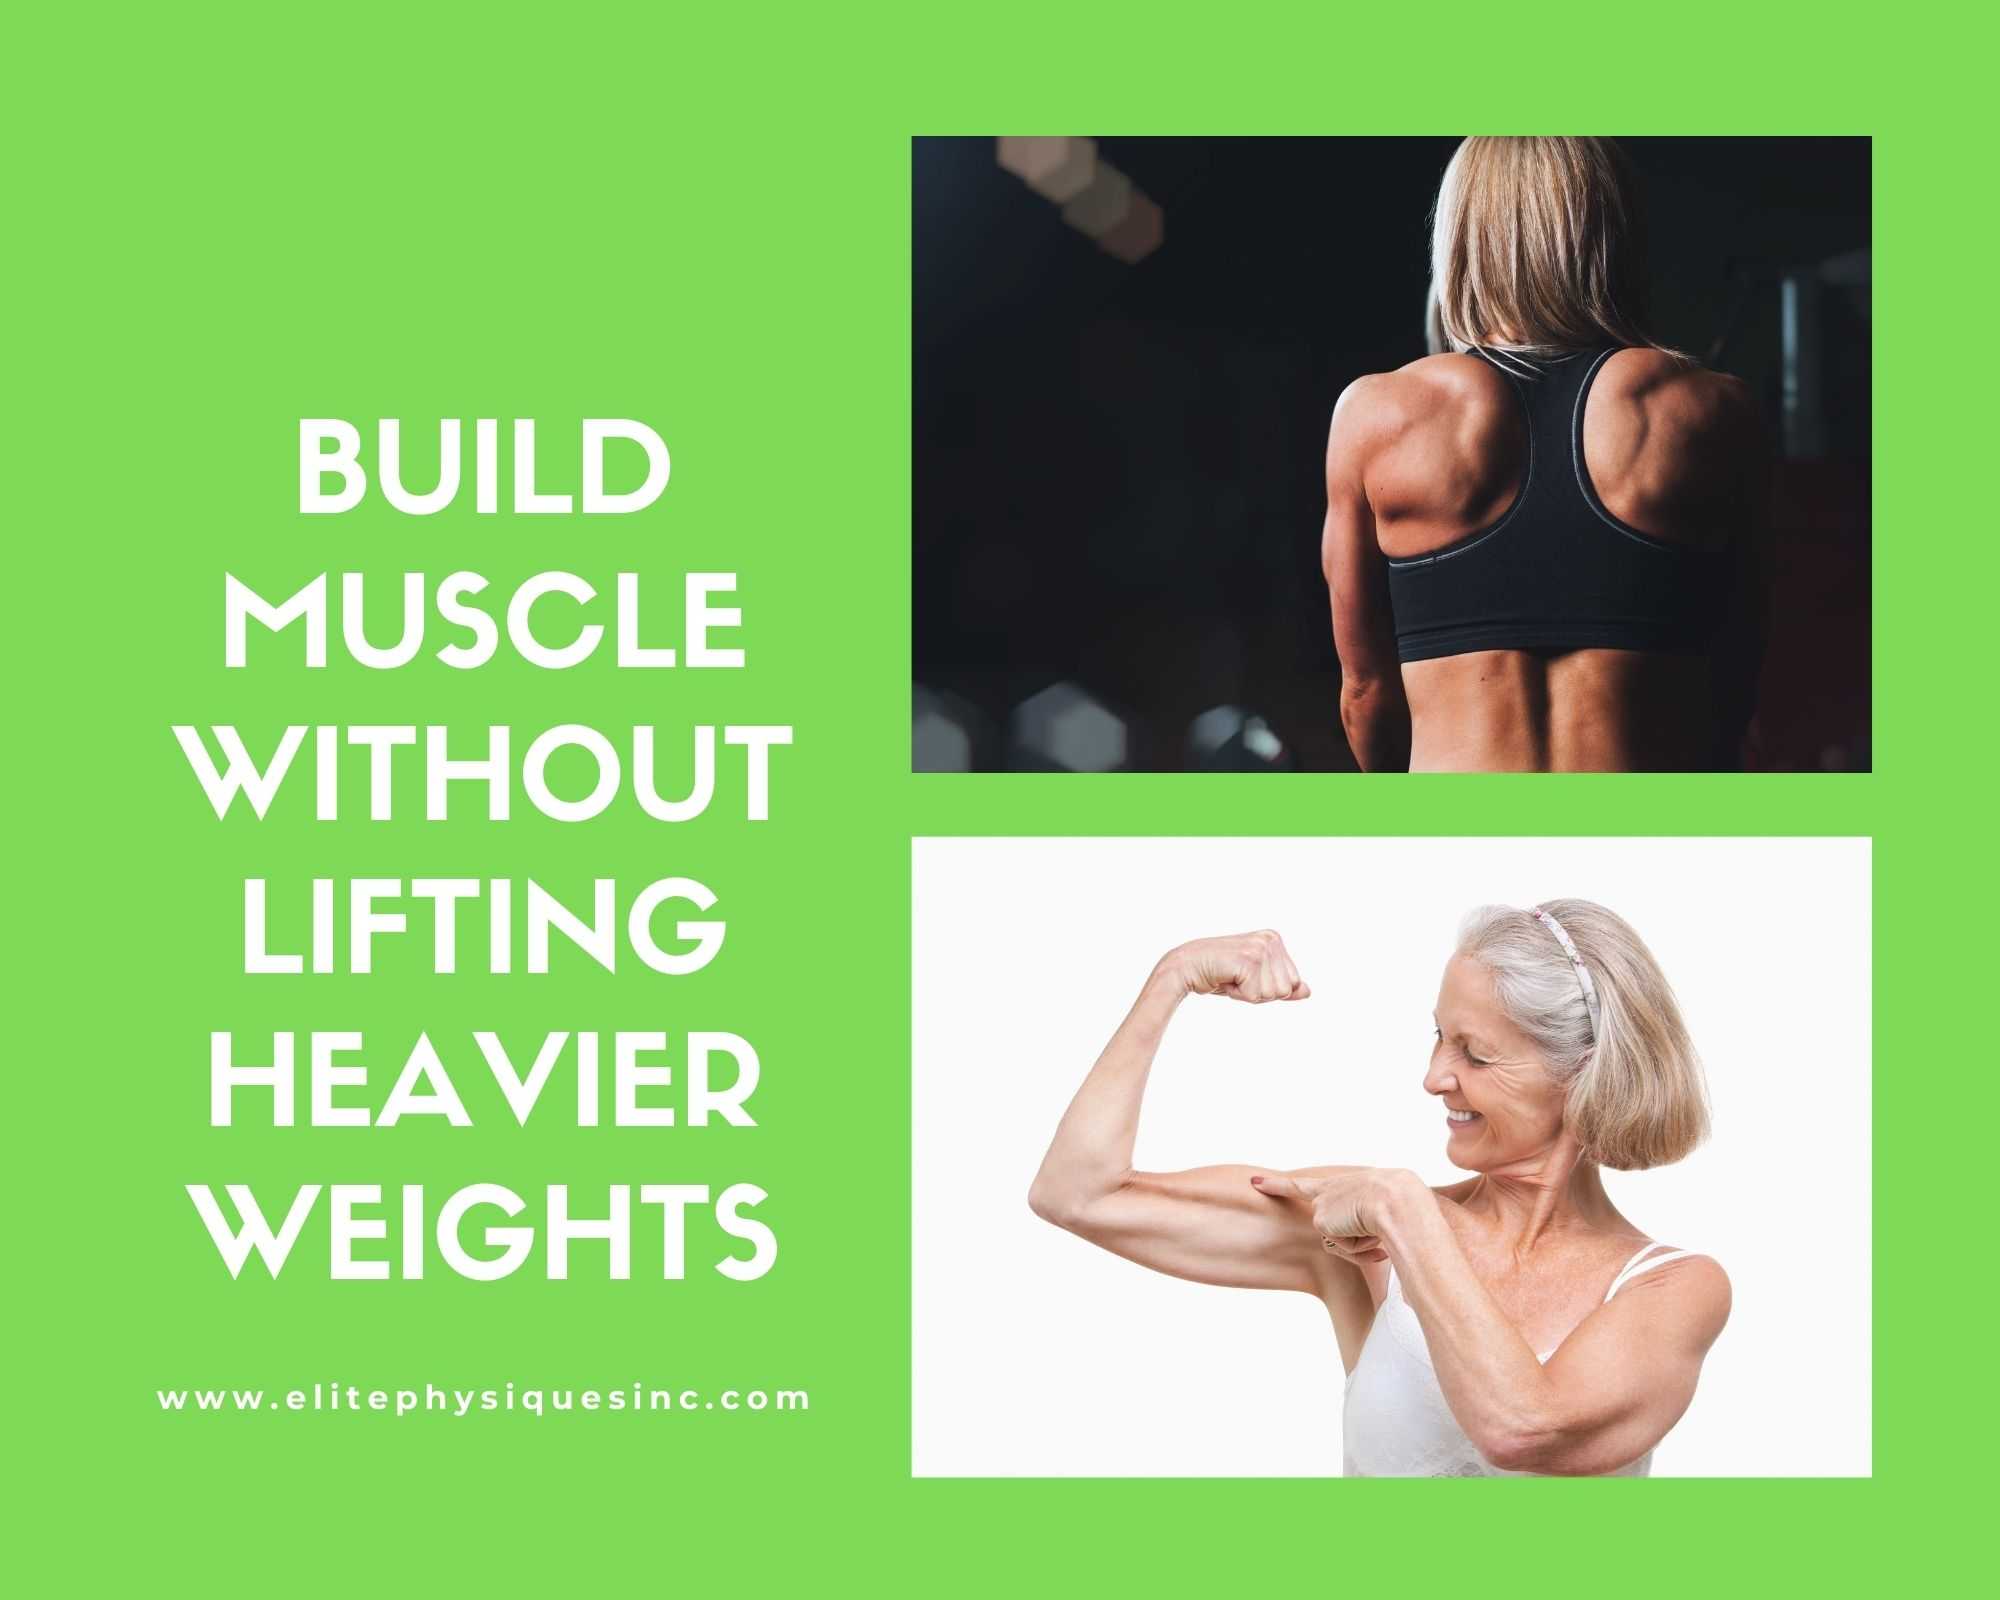 Build muscle